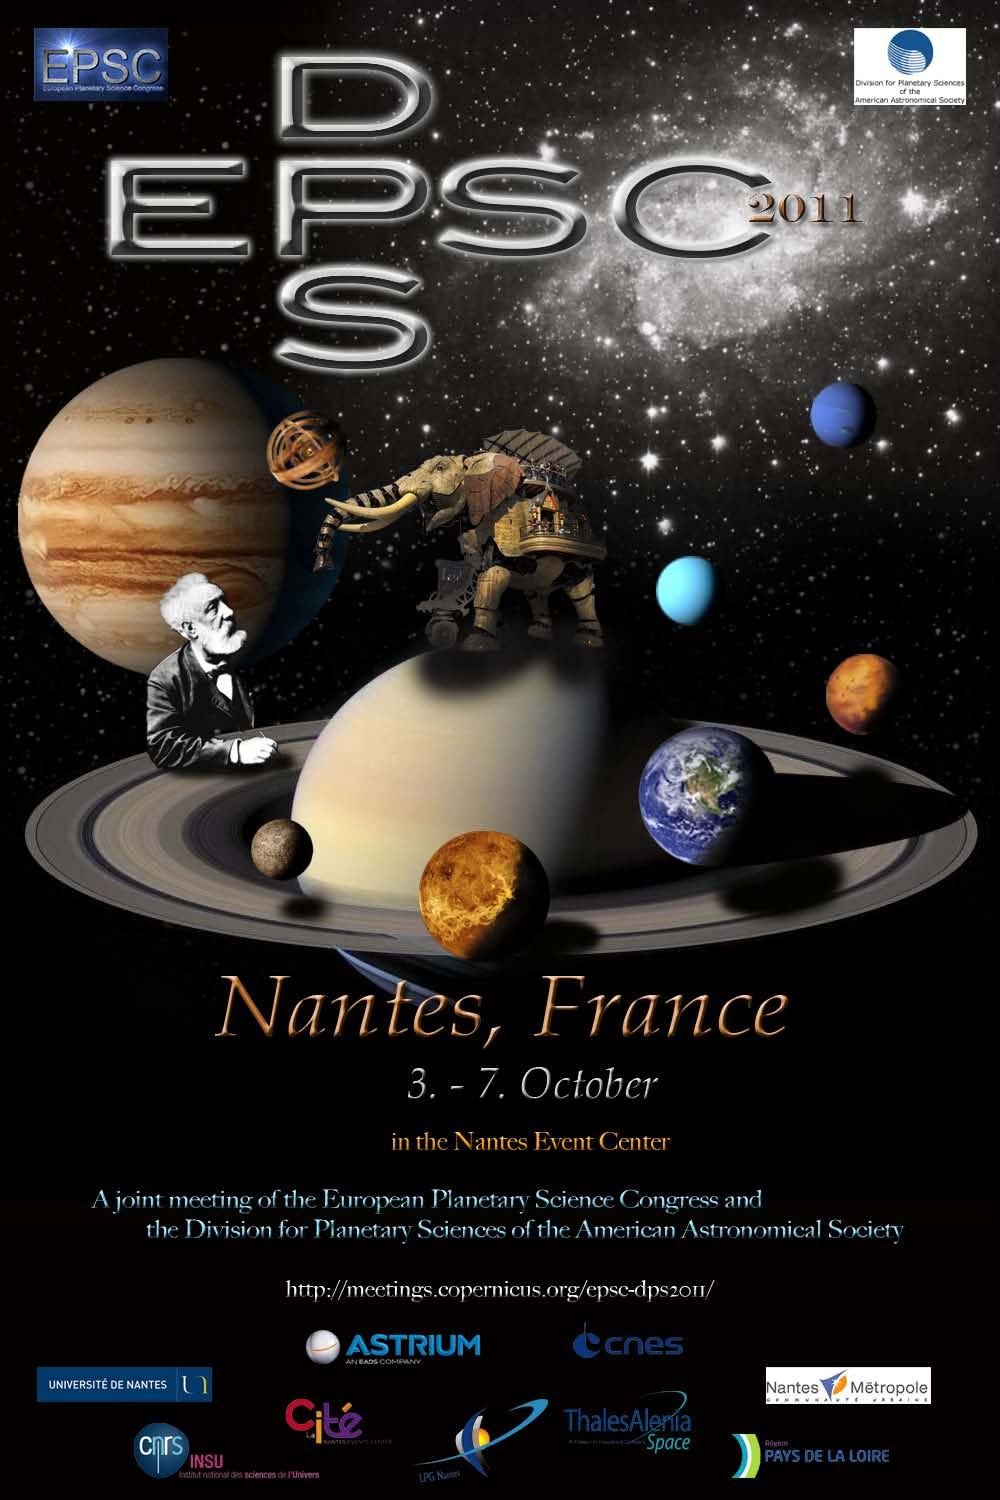 epsc_dps_2011_nantes_poster.jpg